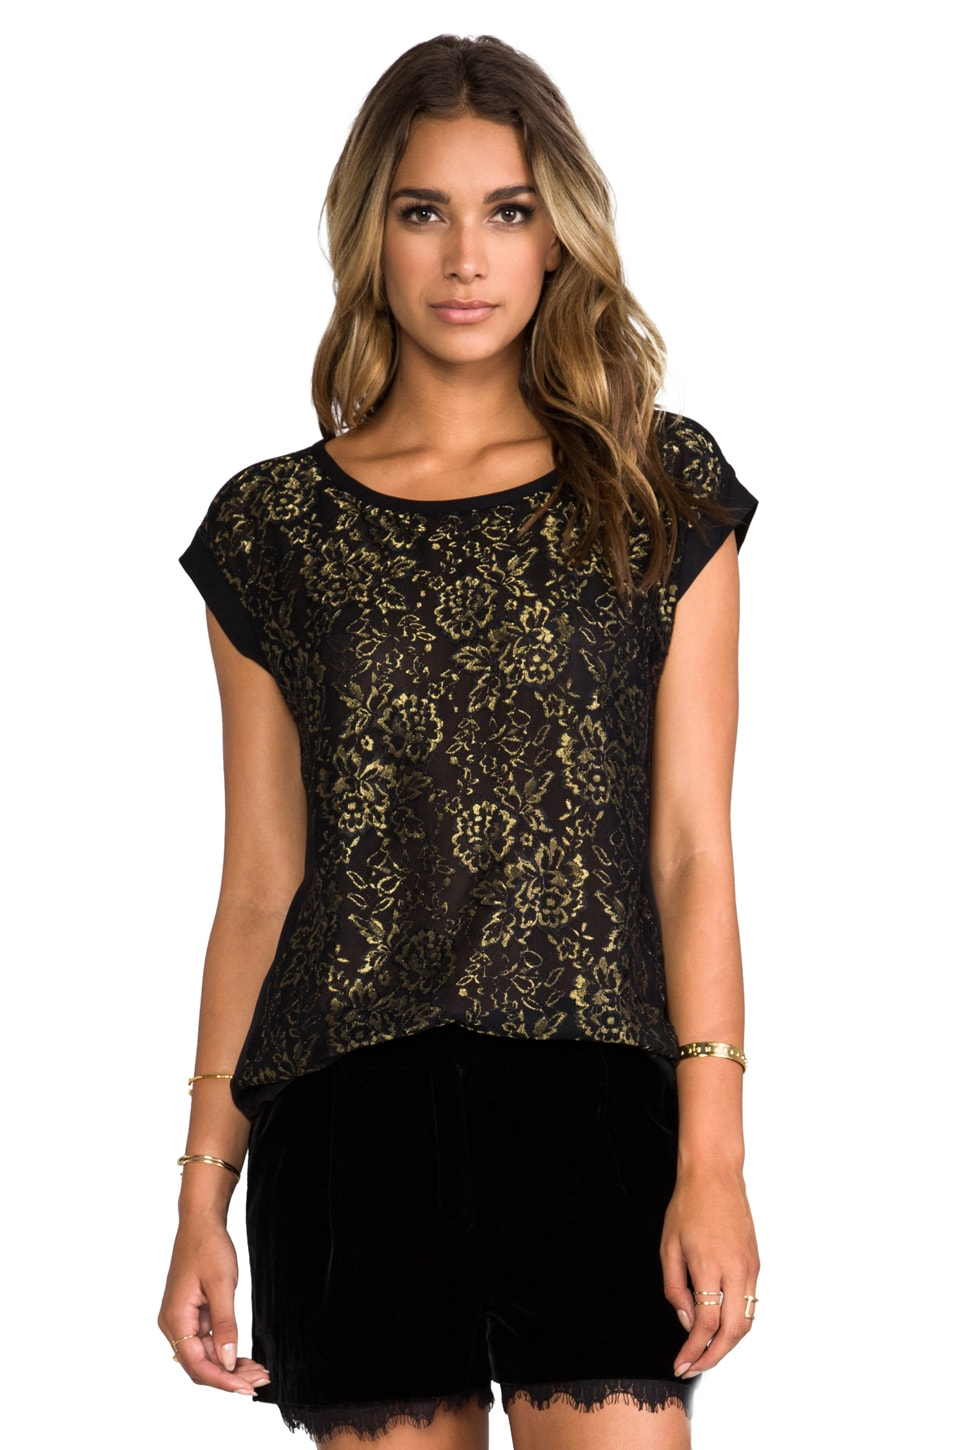 Diane von Furstenberg Cordella Top in Black/Gold